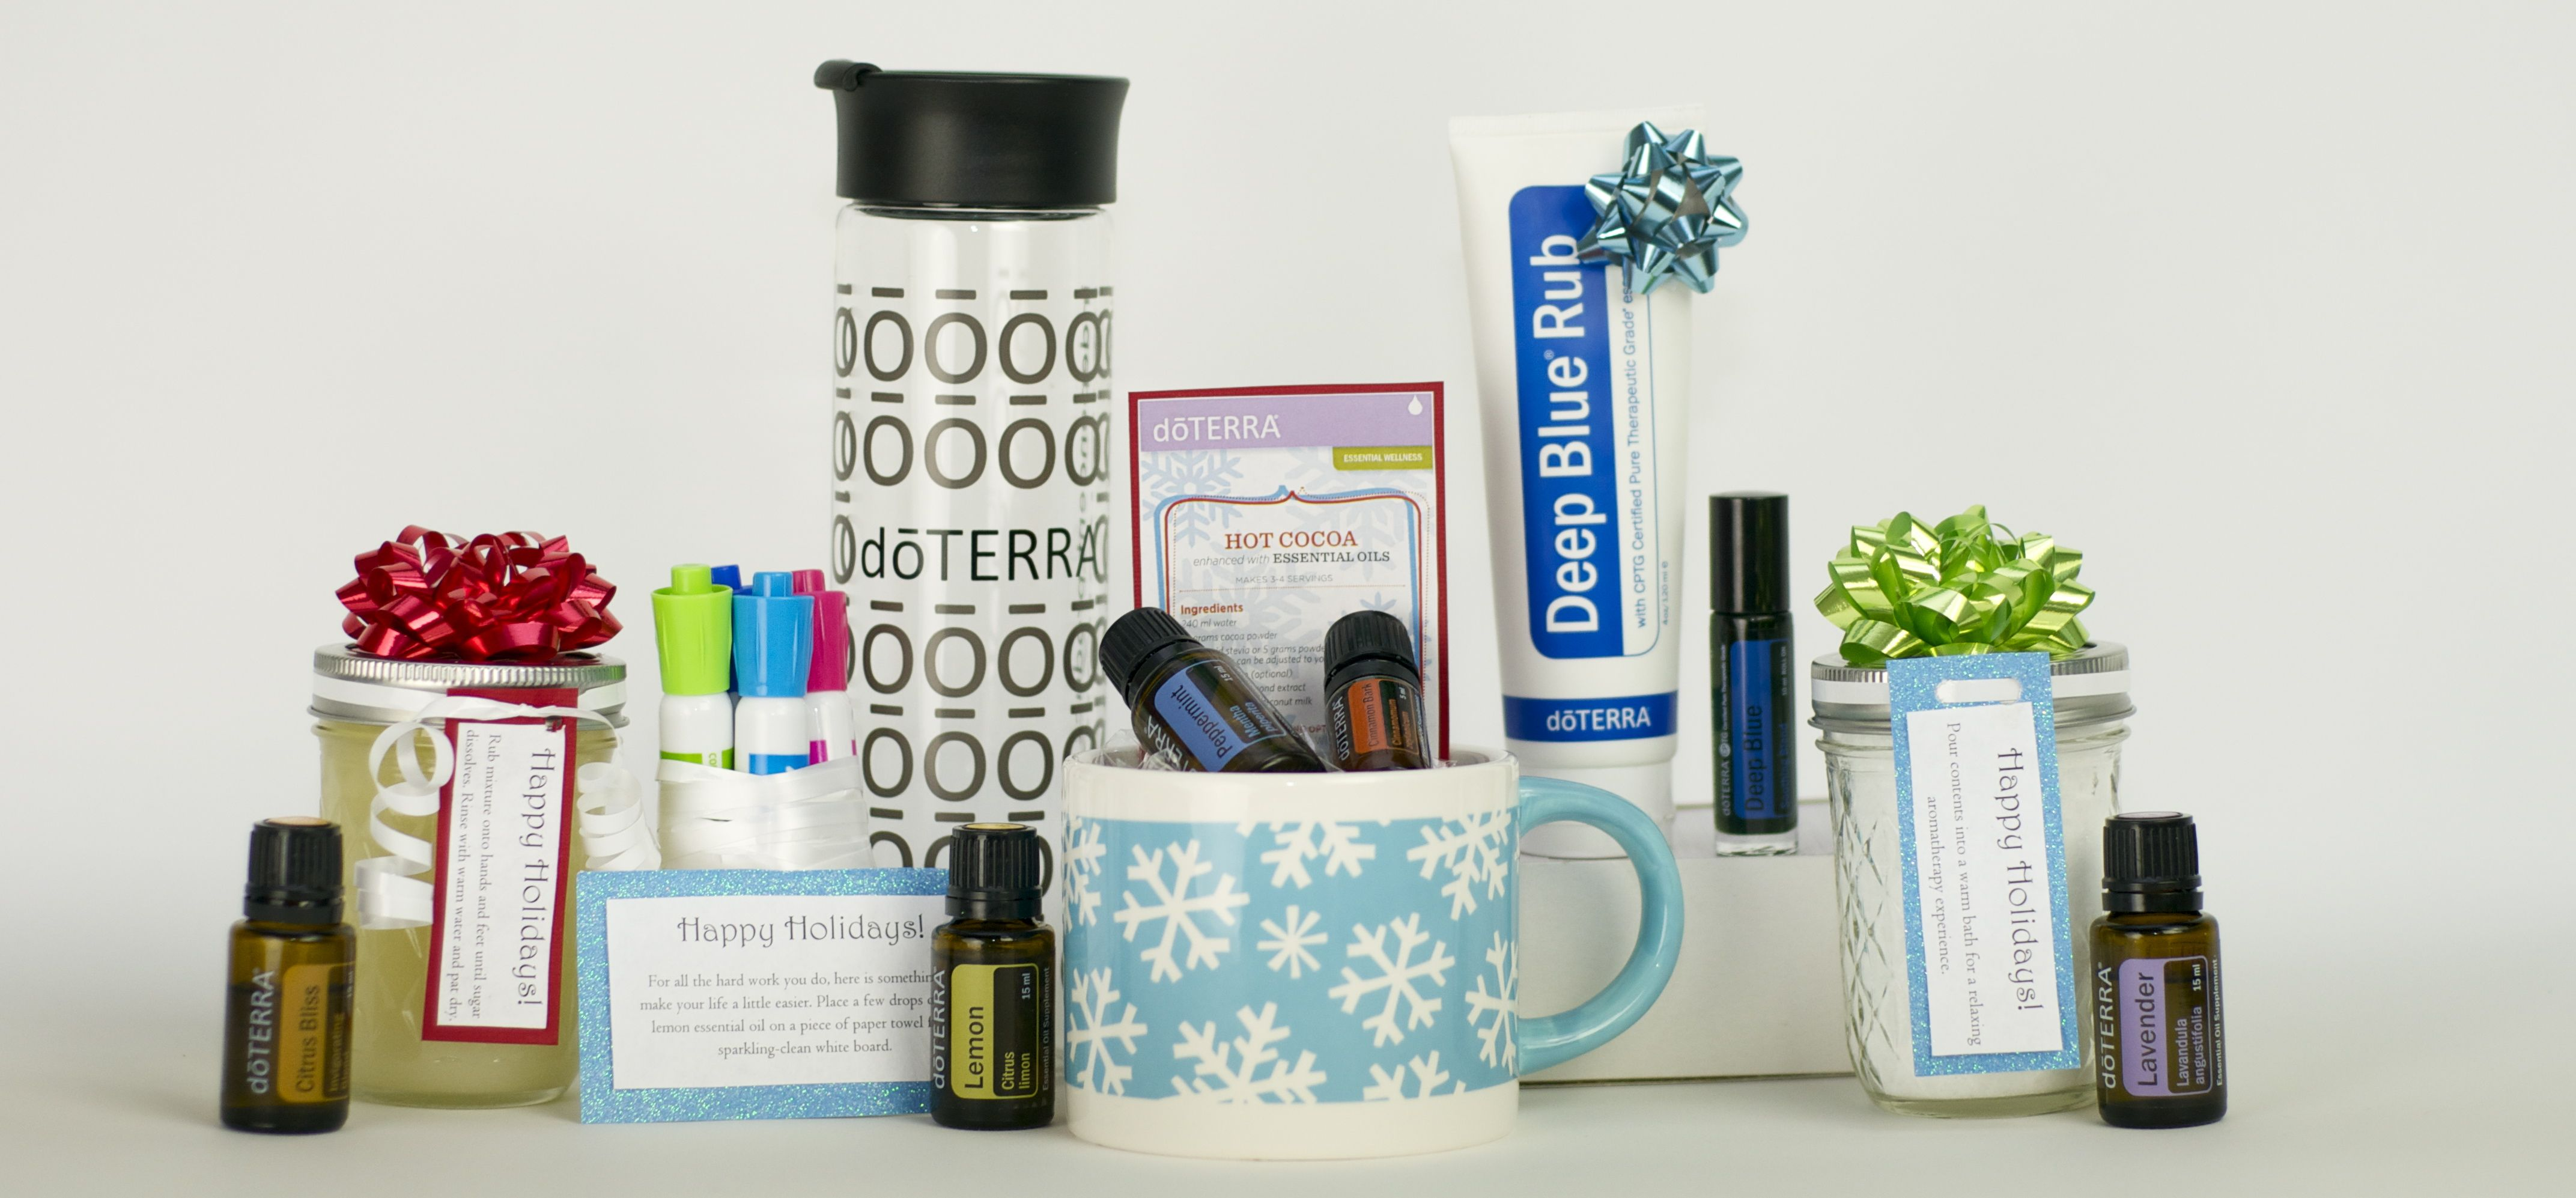 Doterra Christmas Gift Ideas.Pin On For The Party Planner In Me